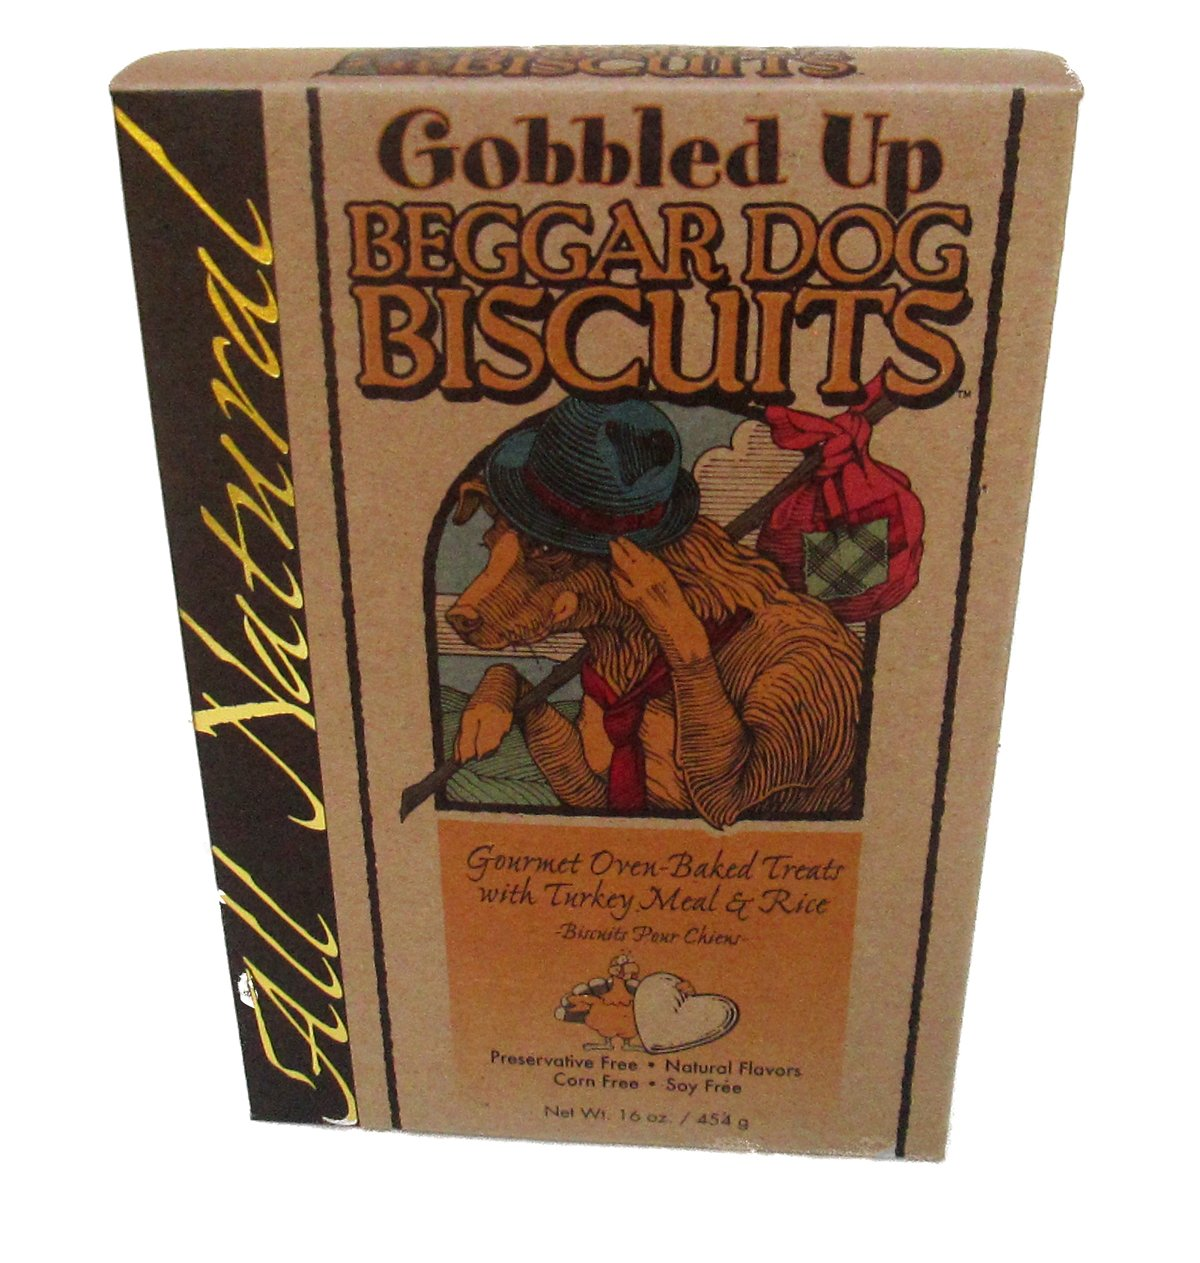 Beggar Dog Biscuits Gobbled Up, Oven-Baked Treats with Turkey & Rice, 16 Oz. Box (2-Pack)